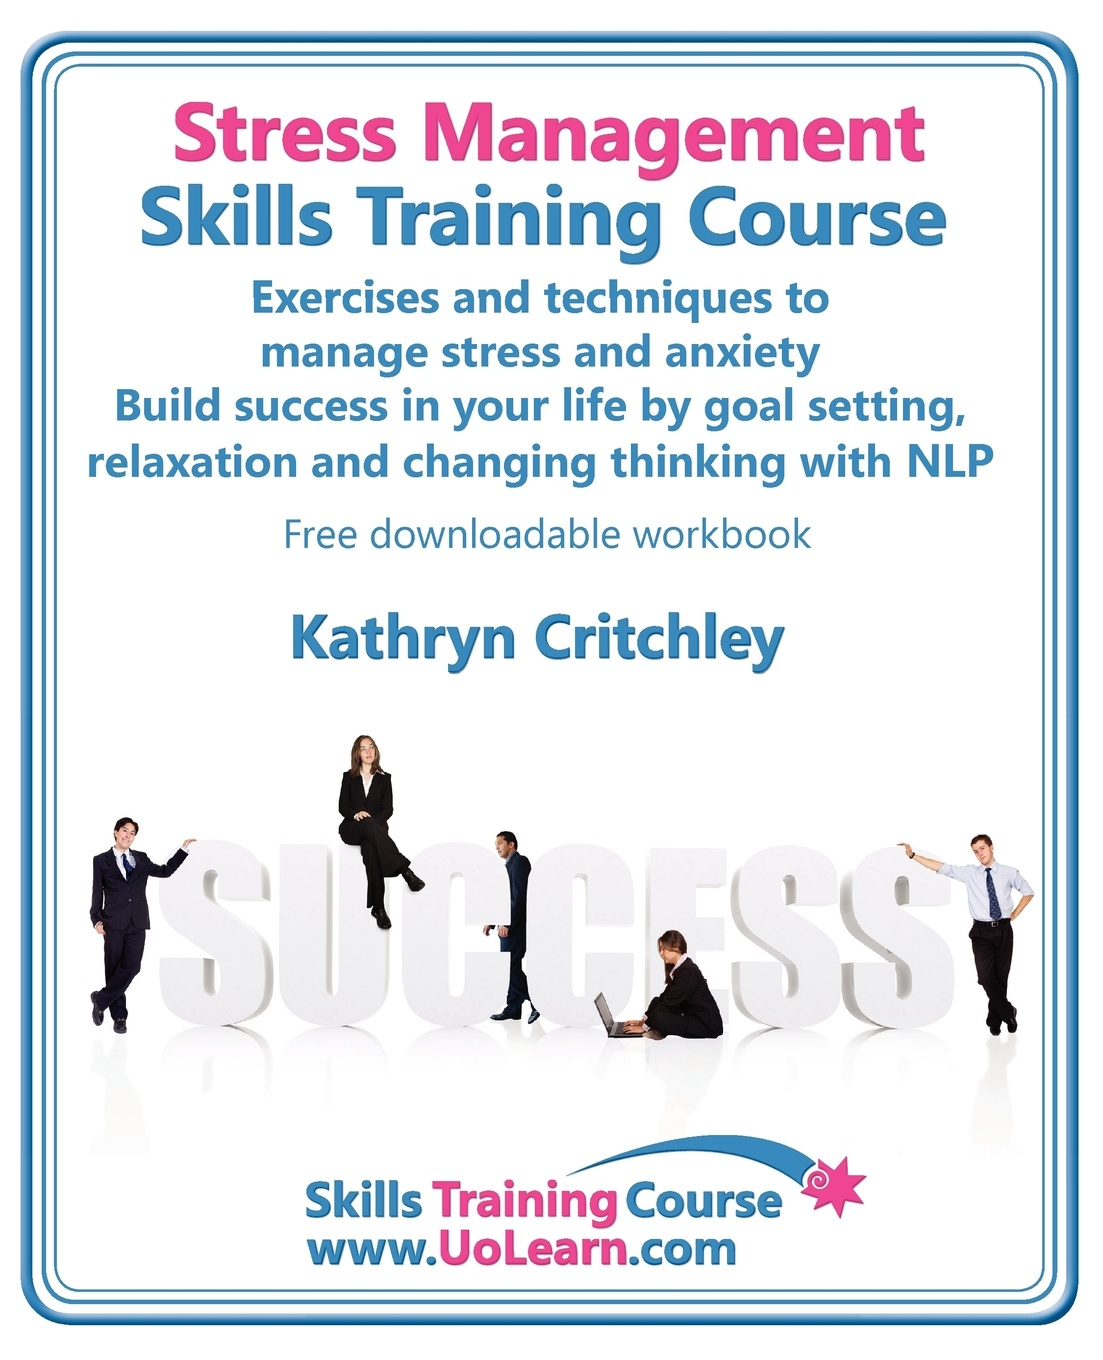 Kathryn Critchley Stress Management Skills Training Course. Exercises and Techniques to Manage Stress and Anxiety. Build Success in Your Life by Goal Setting, Relaxatio jaya ahuja stress and motivation